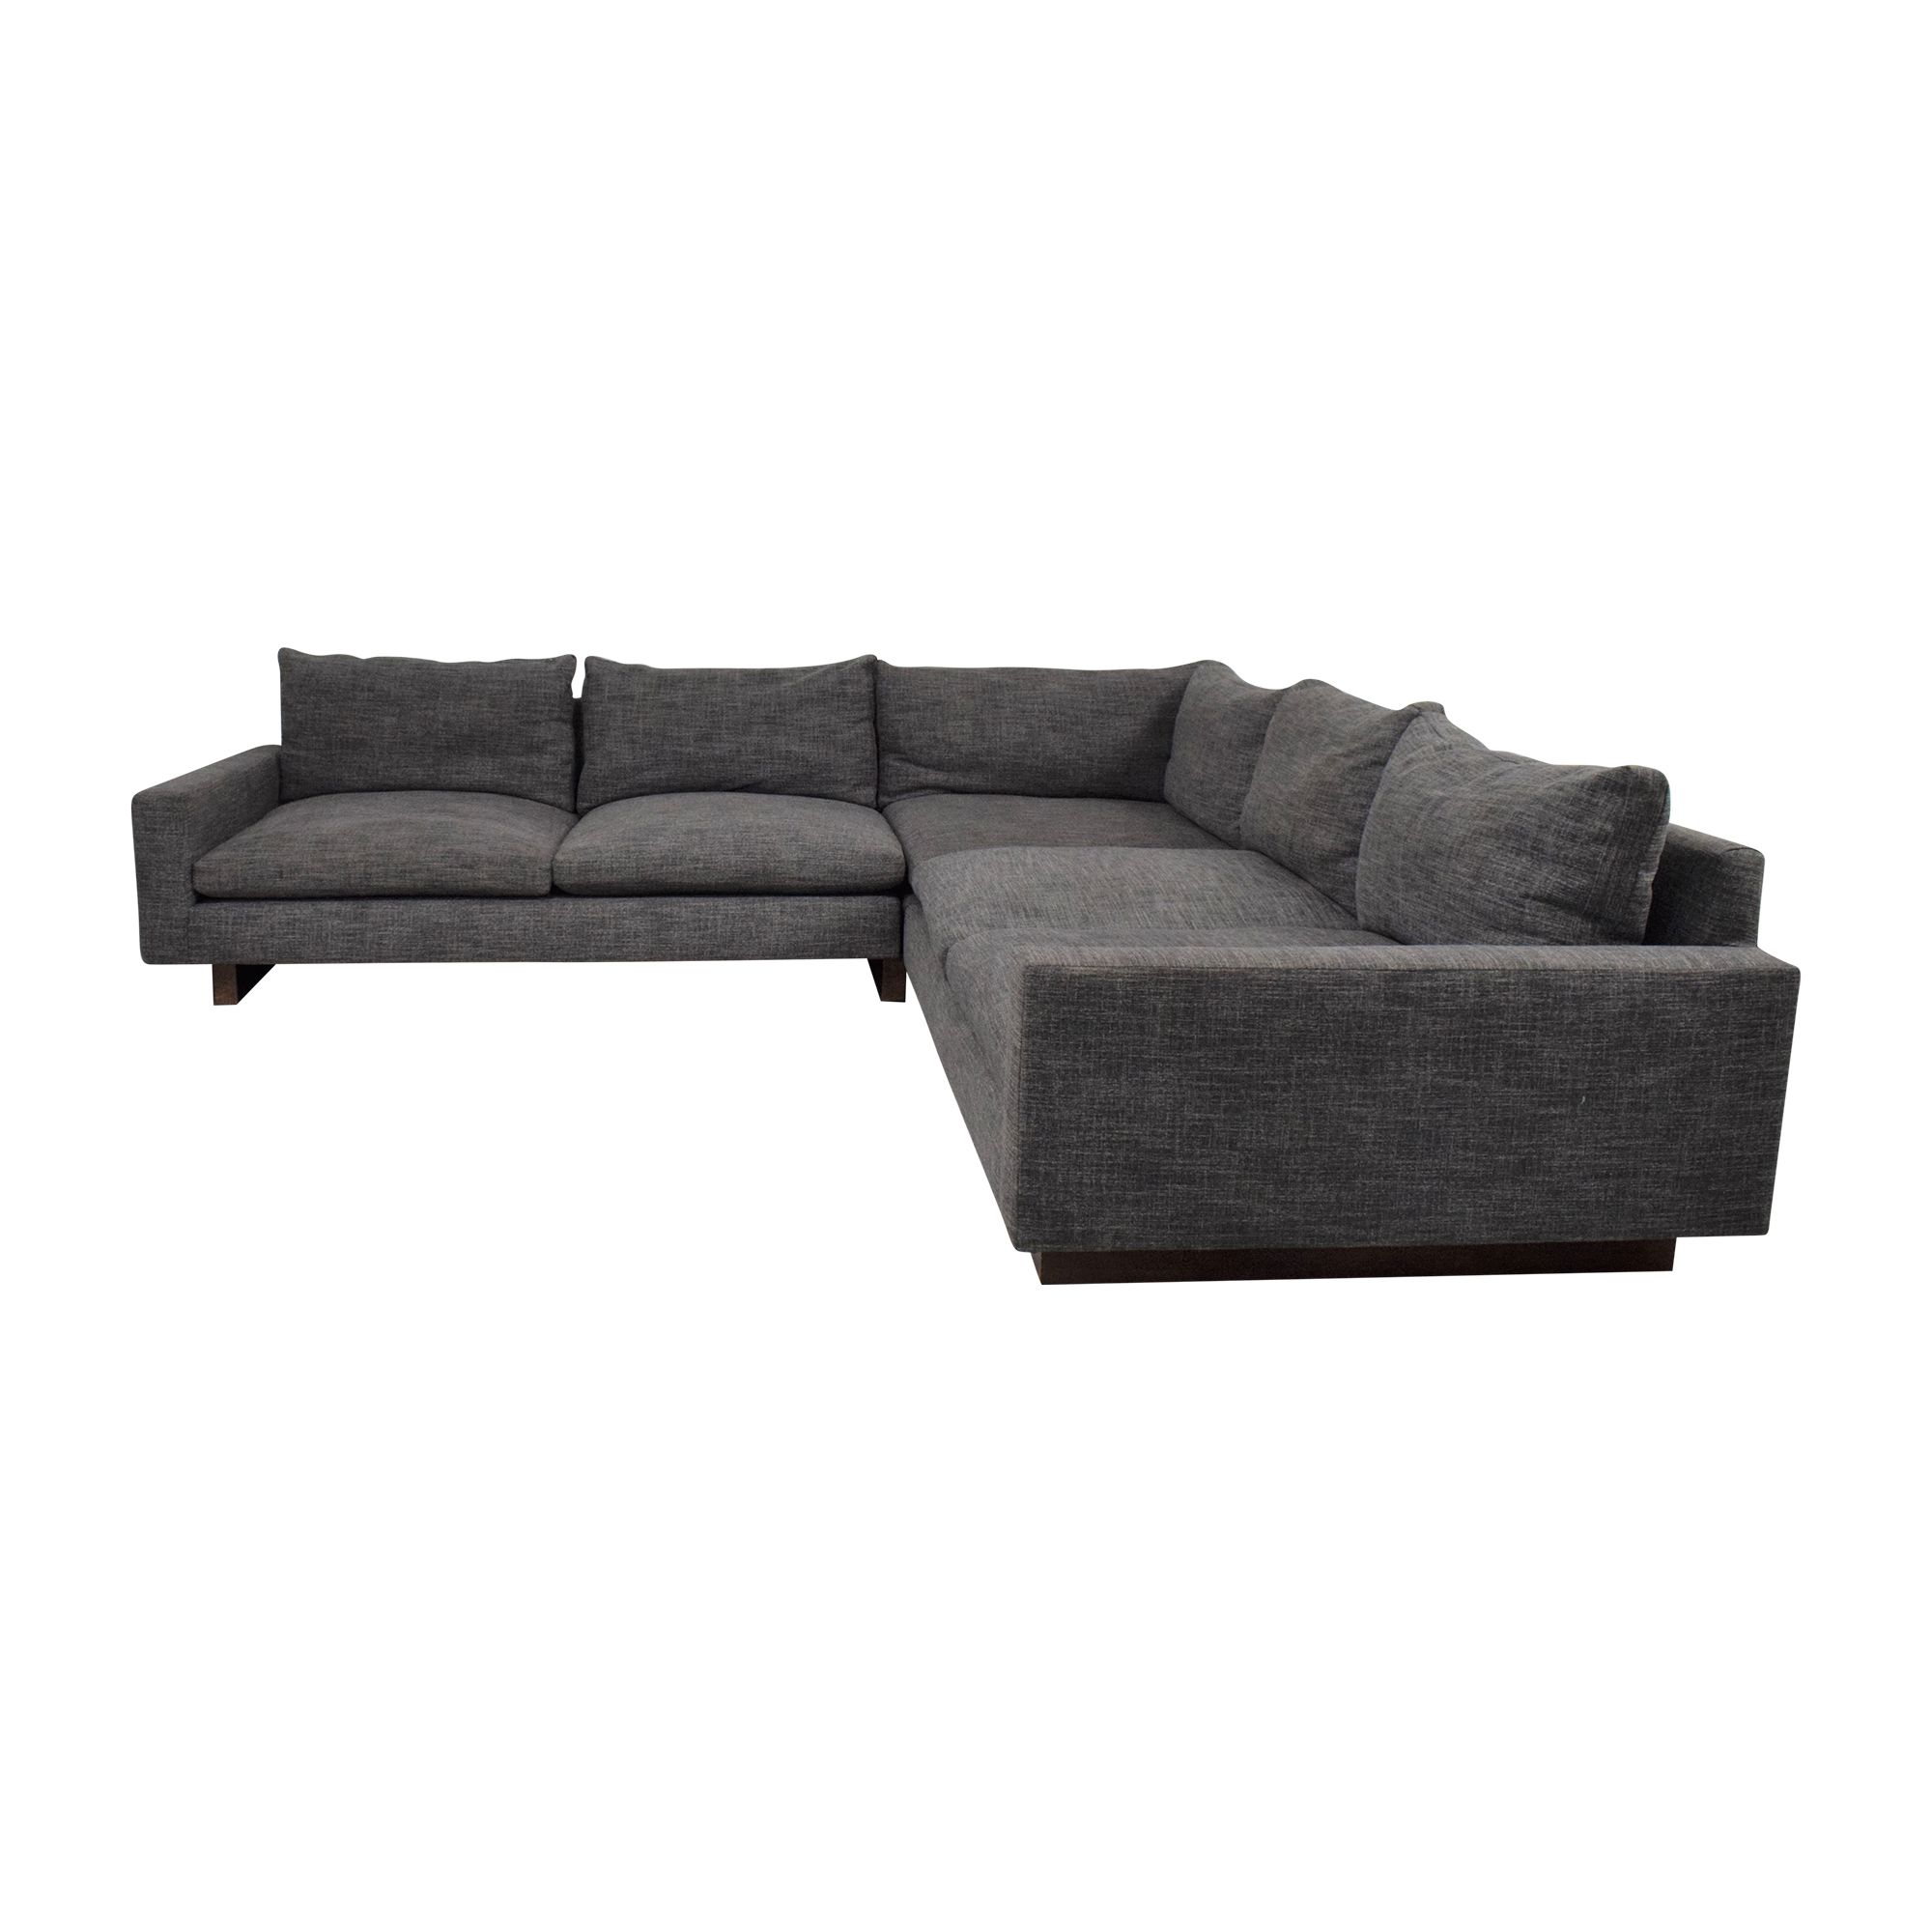 shop West Elm West Elm Harmony 3-Piece L-Shaped Sectional online